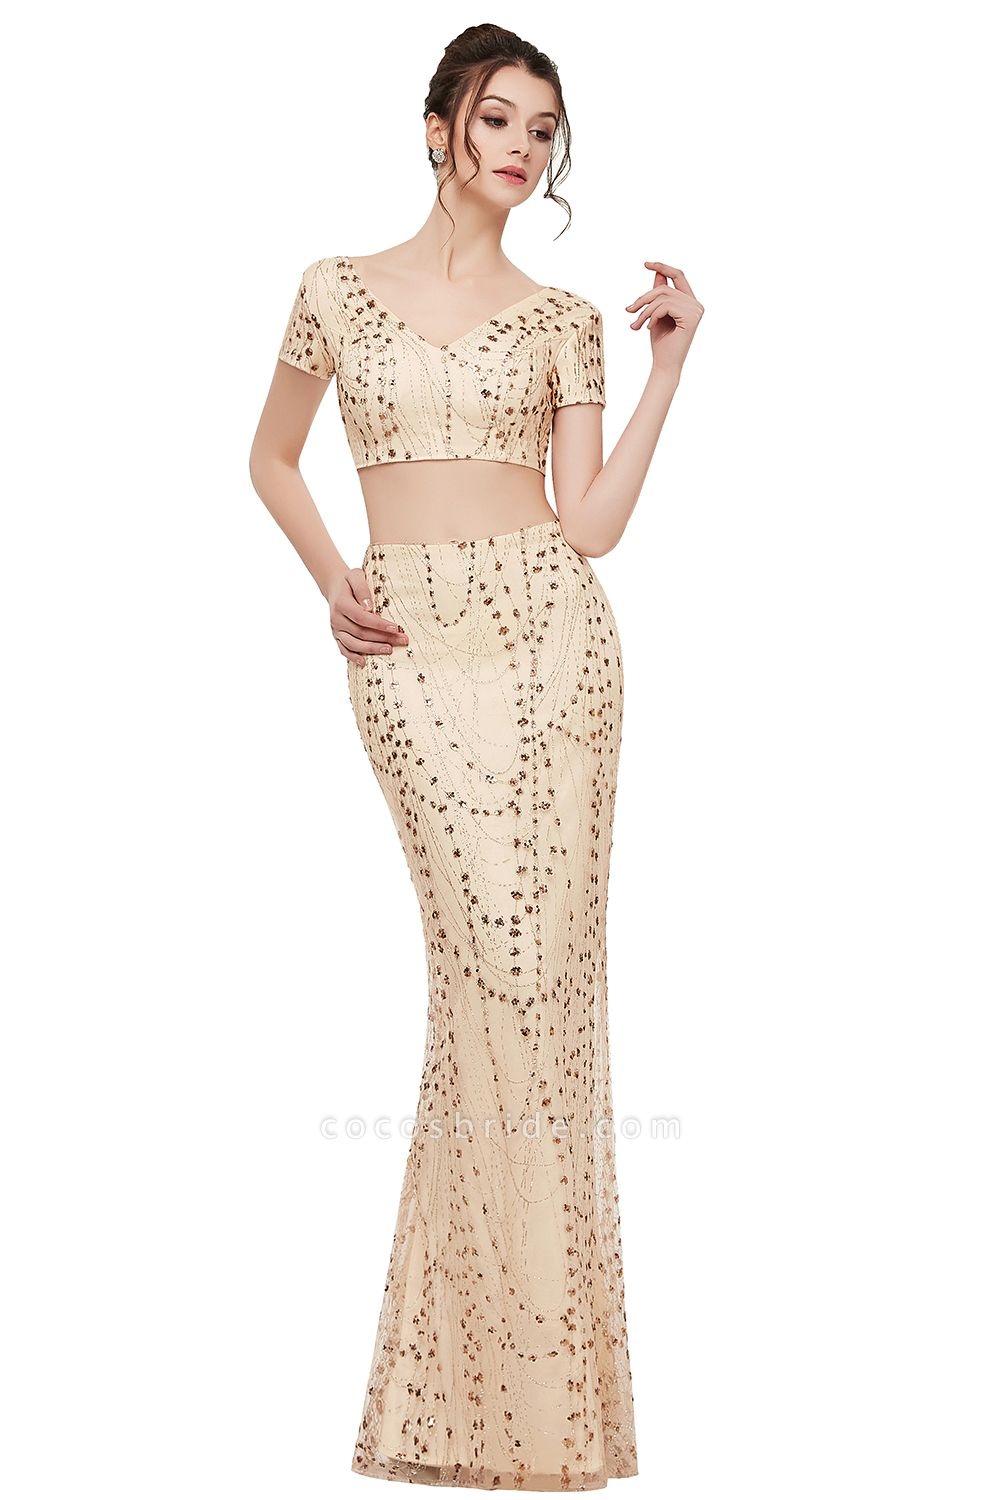 ZANDRA | Mermaid Two-piece V-neck Floor Length Short Sleeves Champagne Prom Dresses with Sequins